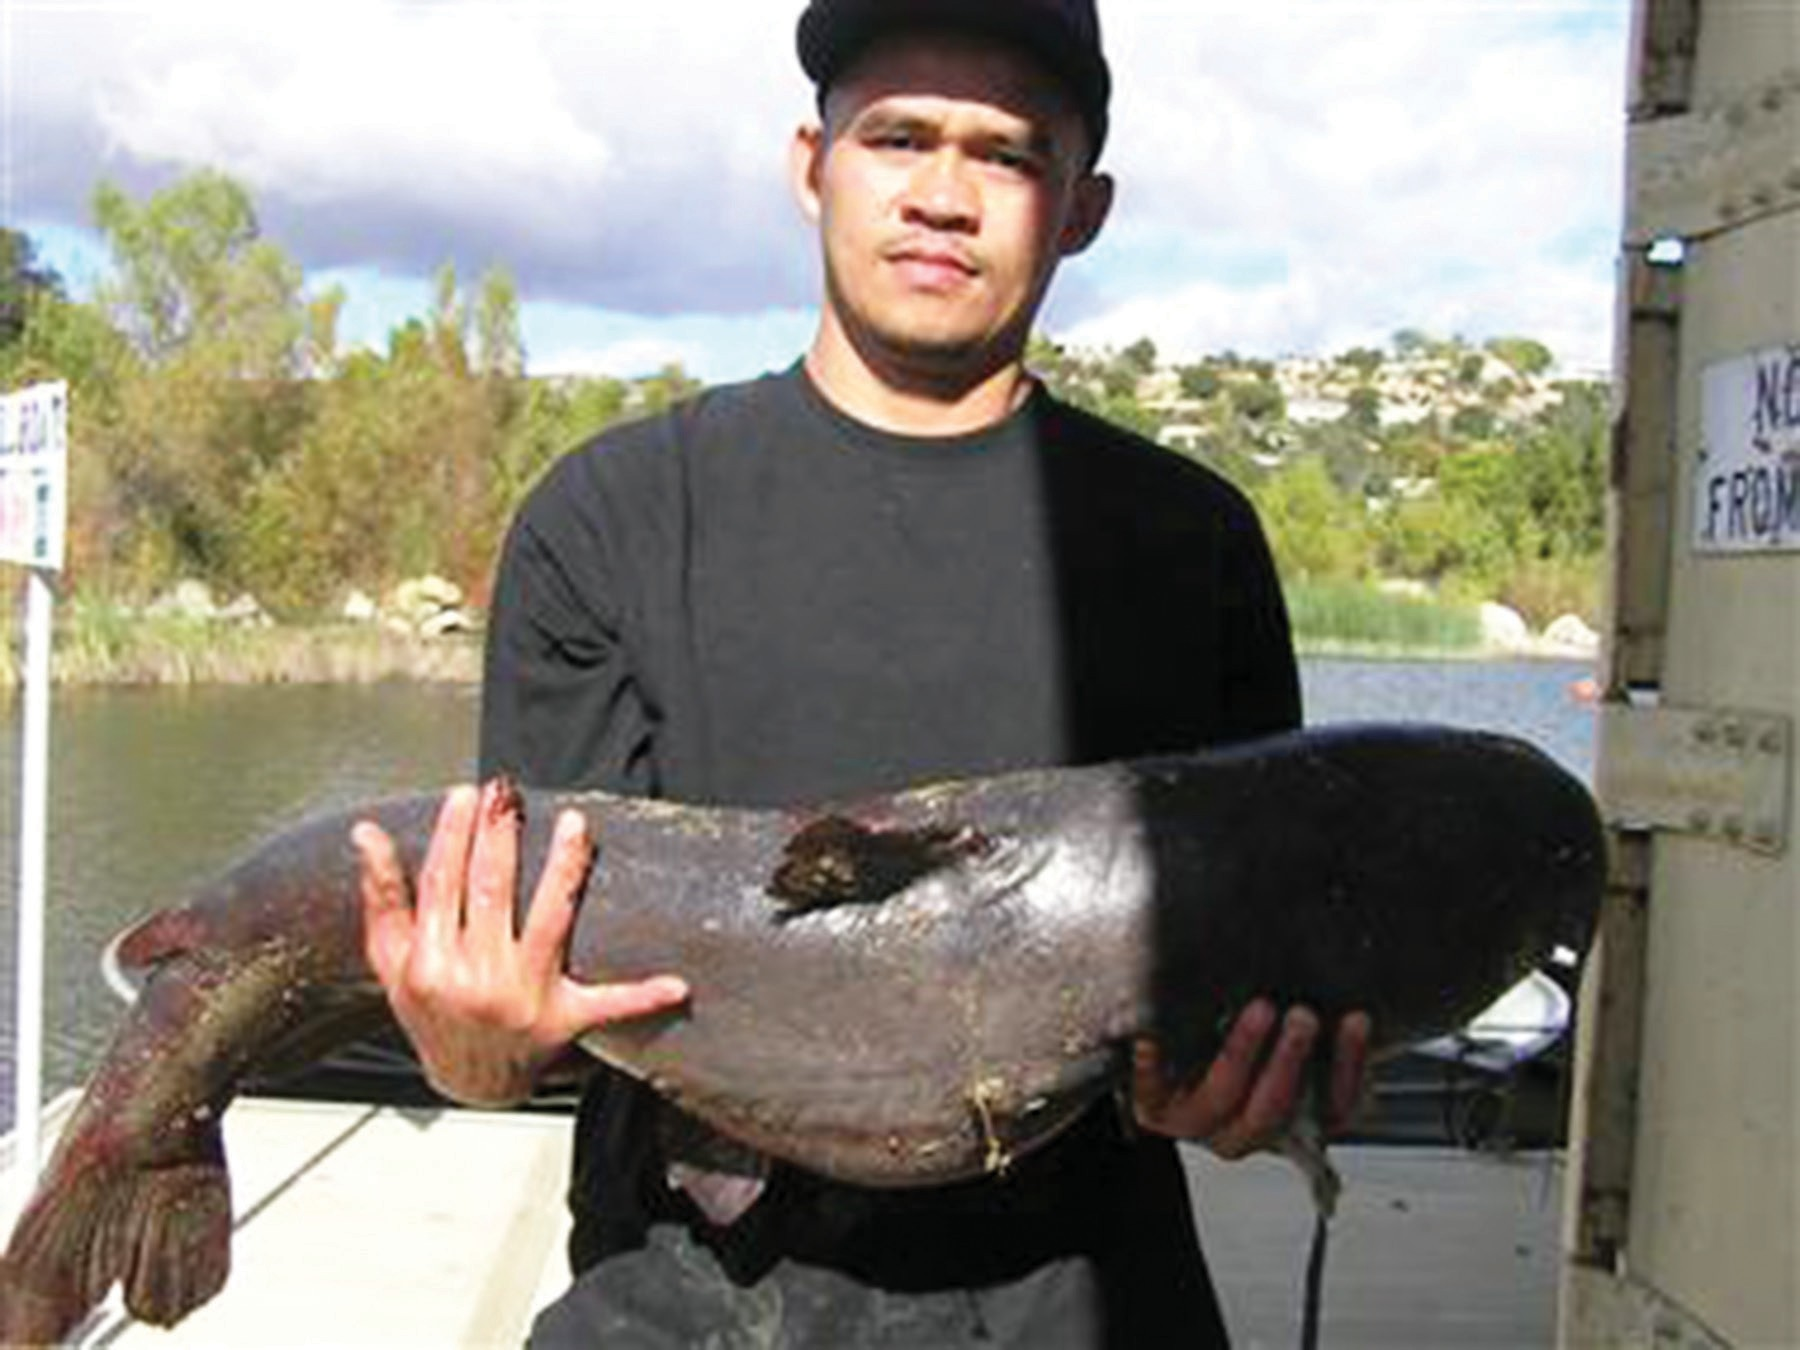 This 32-pound catfish (or is a sea lion?) was caught several years ago at Lake Wohlford by Sam Sengsouly of Escondido.